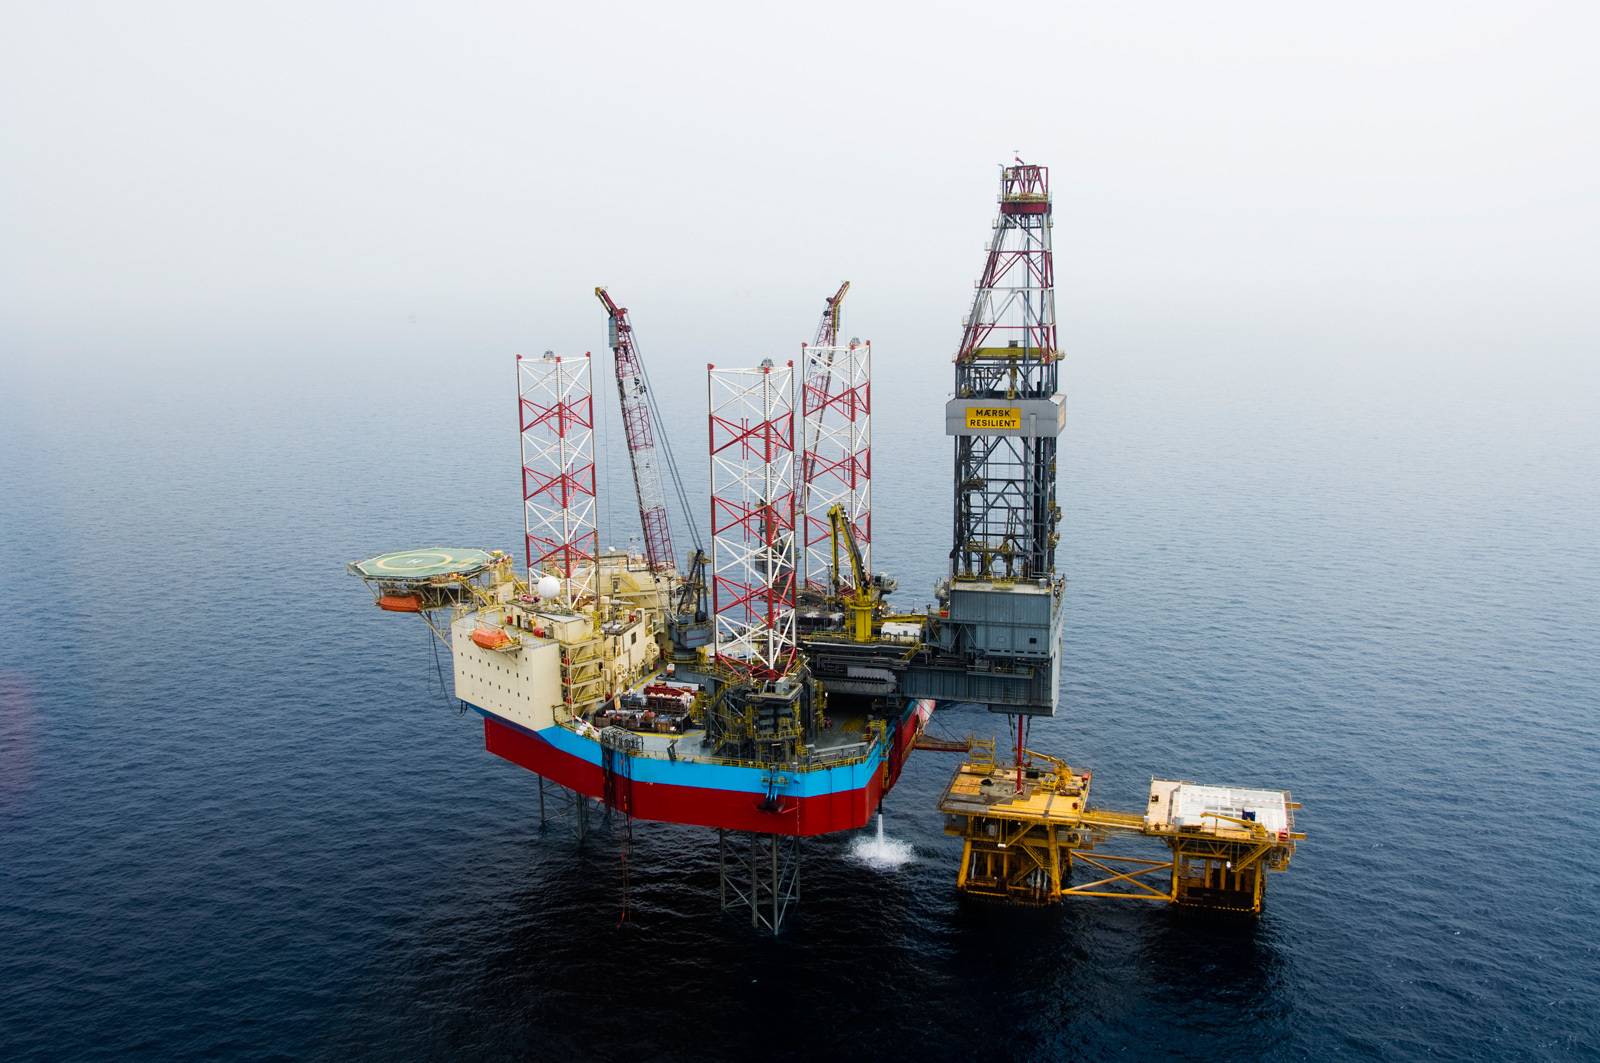 The Maersk Resilient drilling rig won a new contract with IOG in the first half of the year.